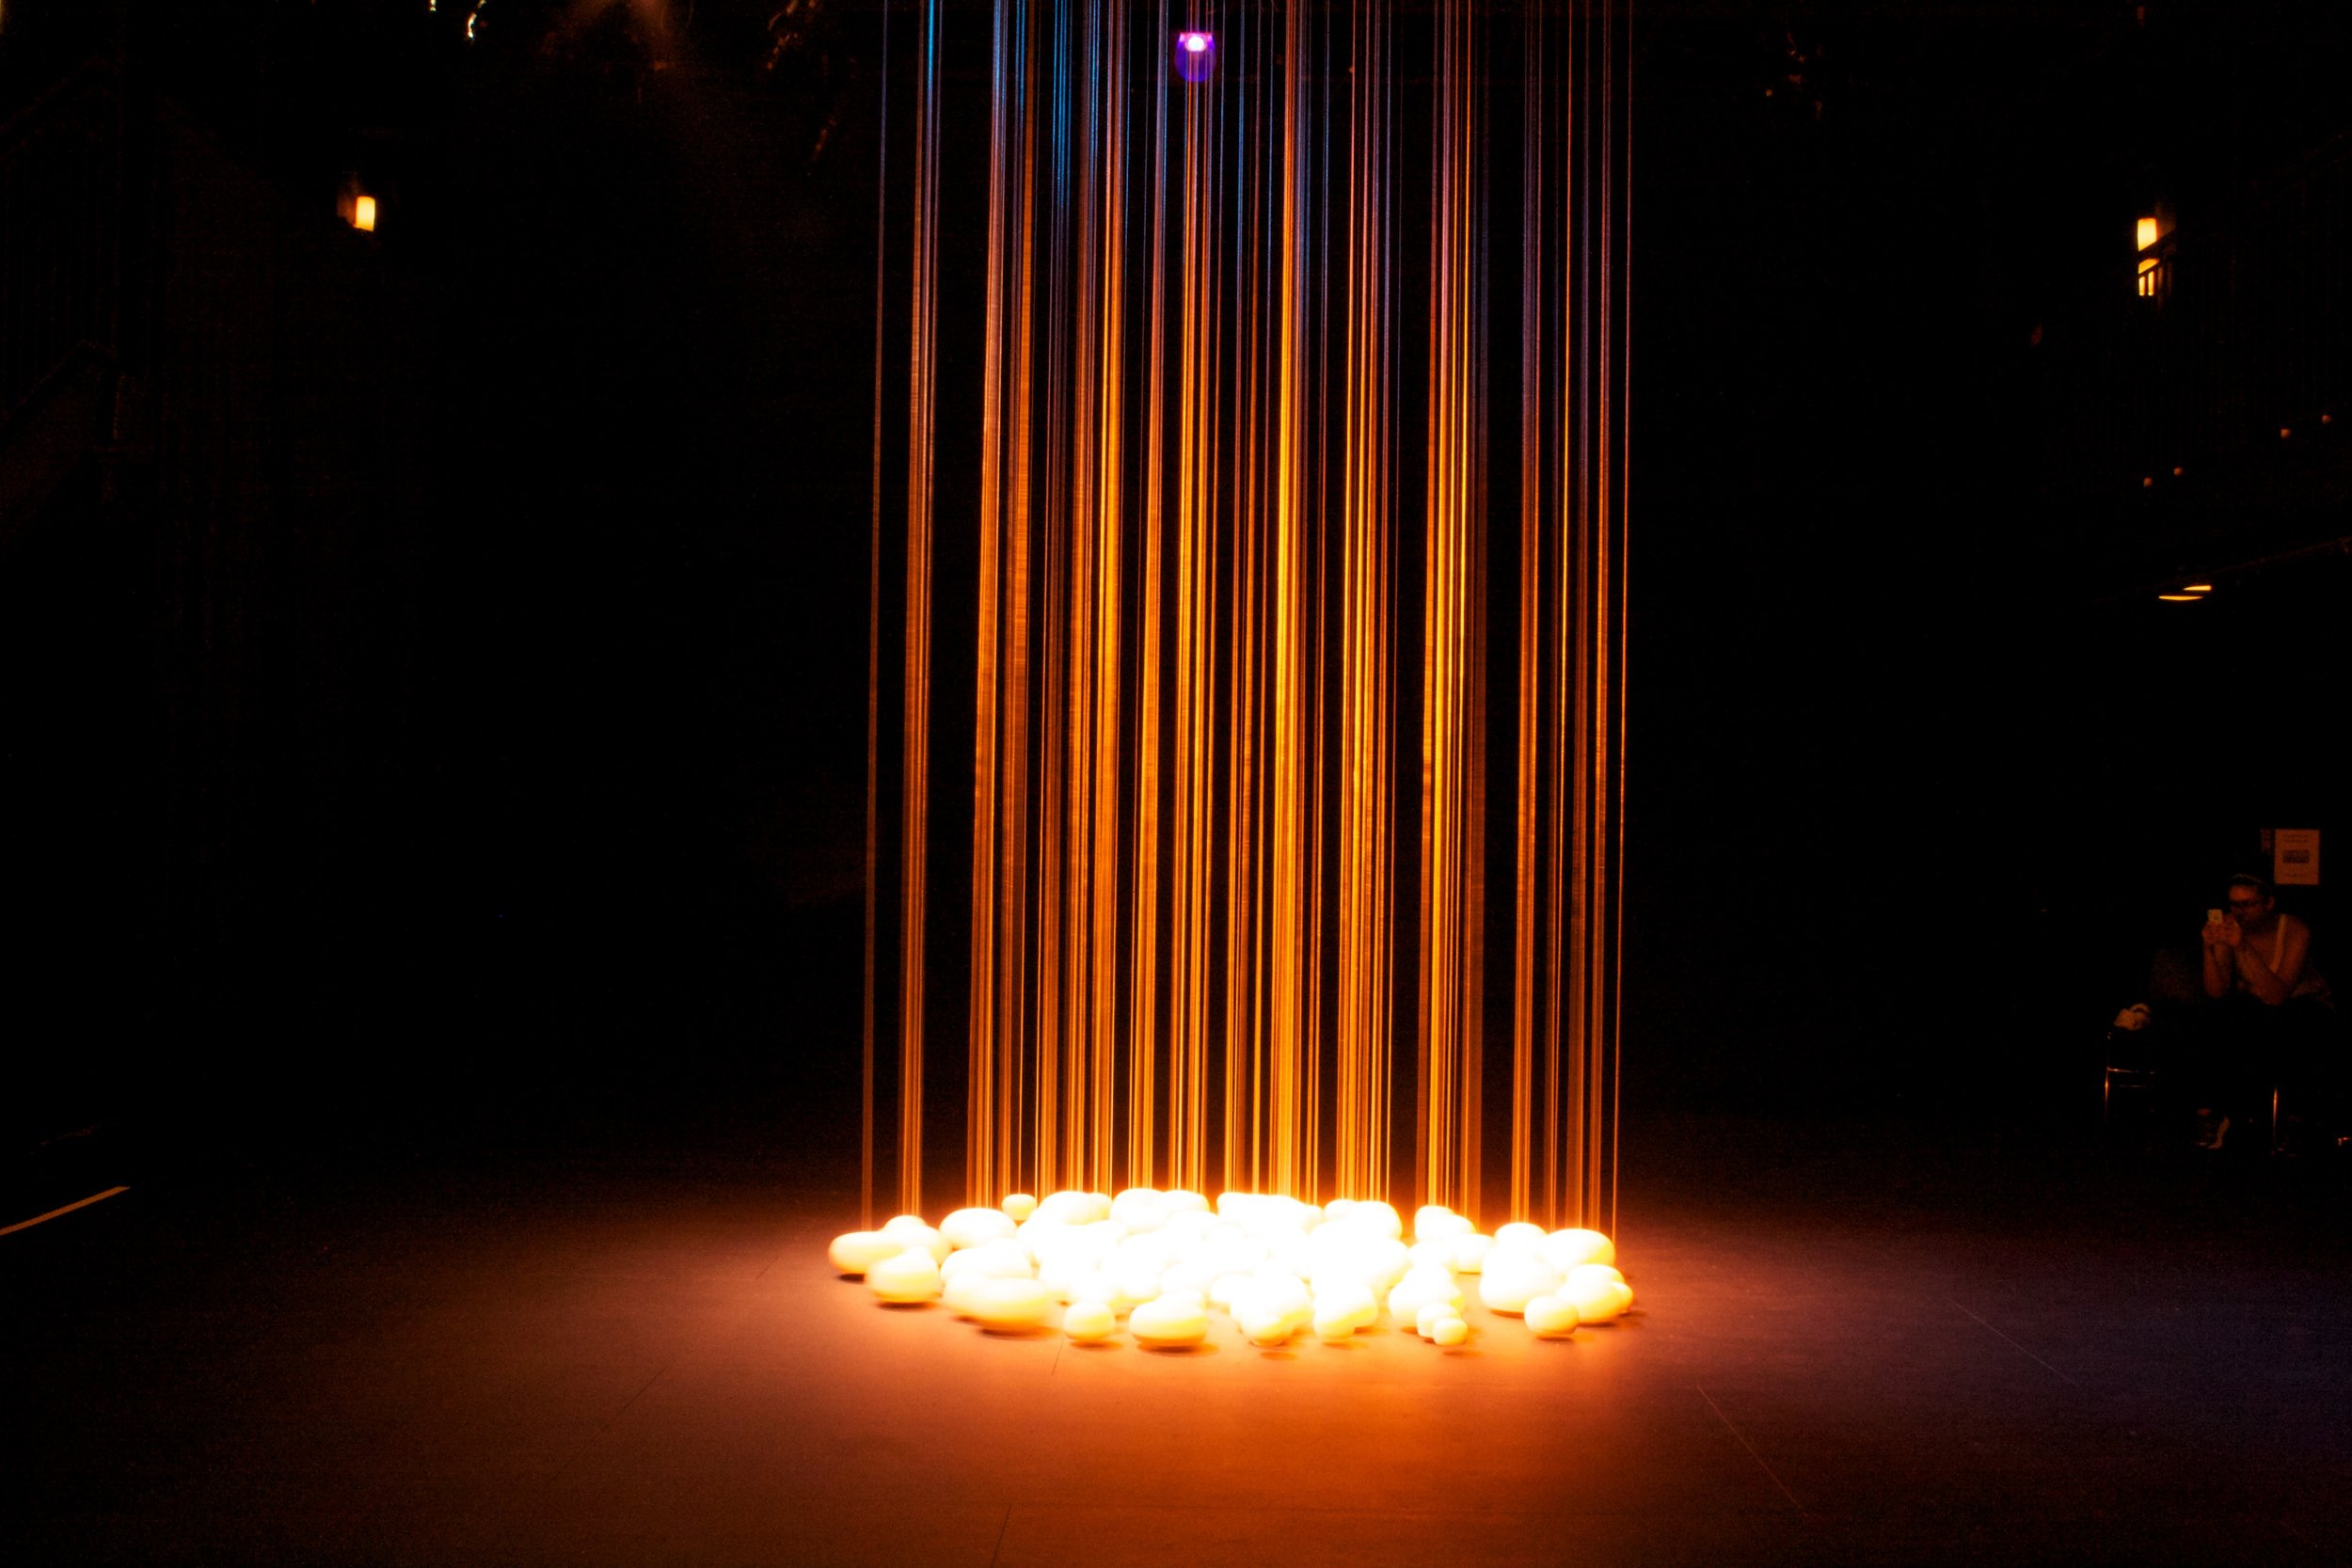 Resonance  installed at the Sheen Center for Thought & Culture, NYC, September 2015.